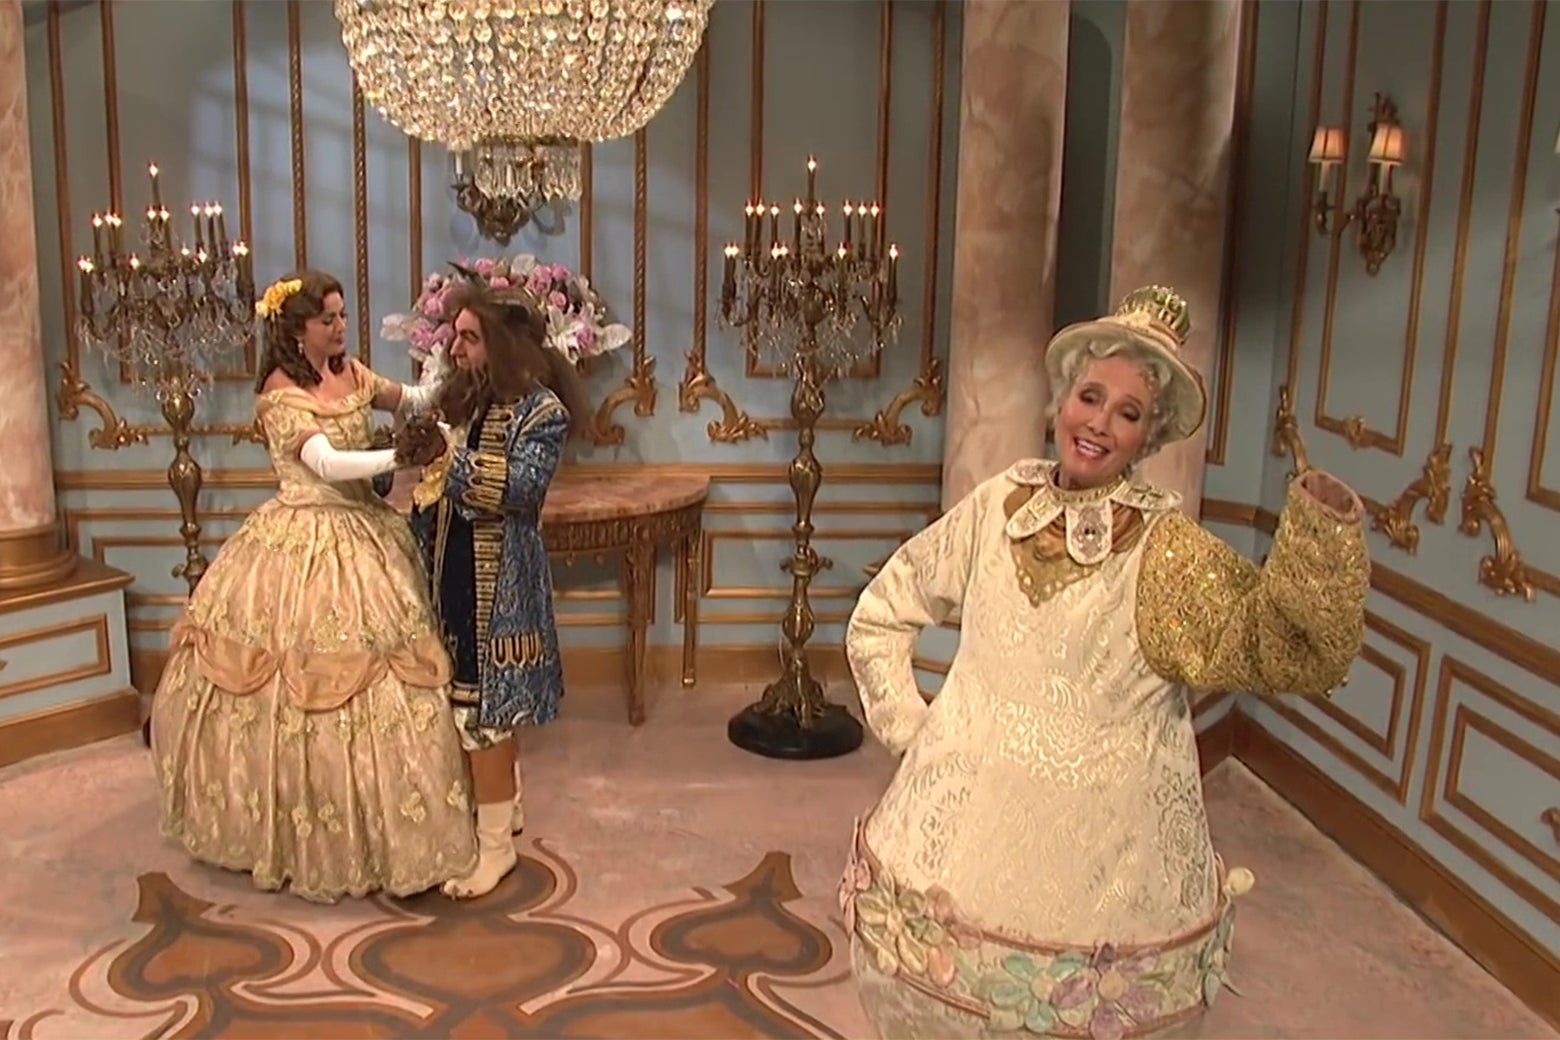 Cecily Strong, Beck Bennett, and Emma Thompson recreate a scene from Beauty and the Beast.